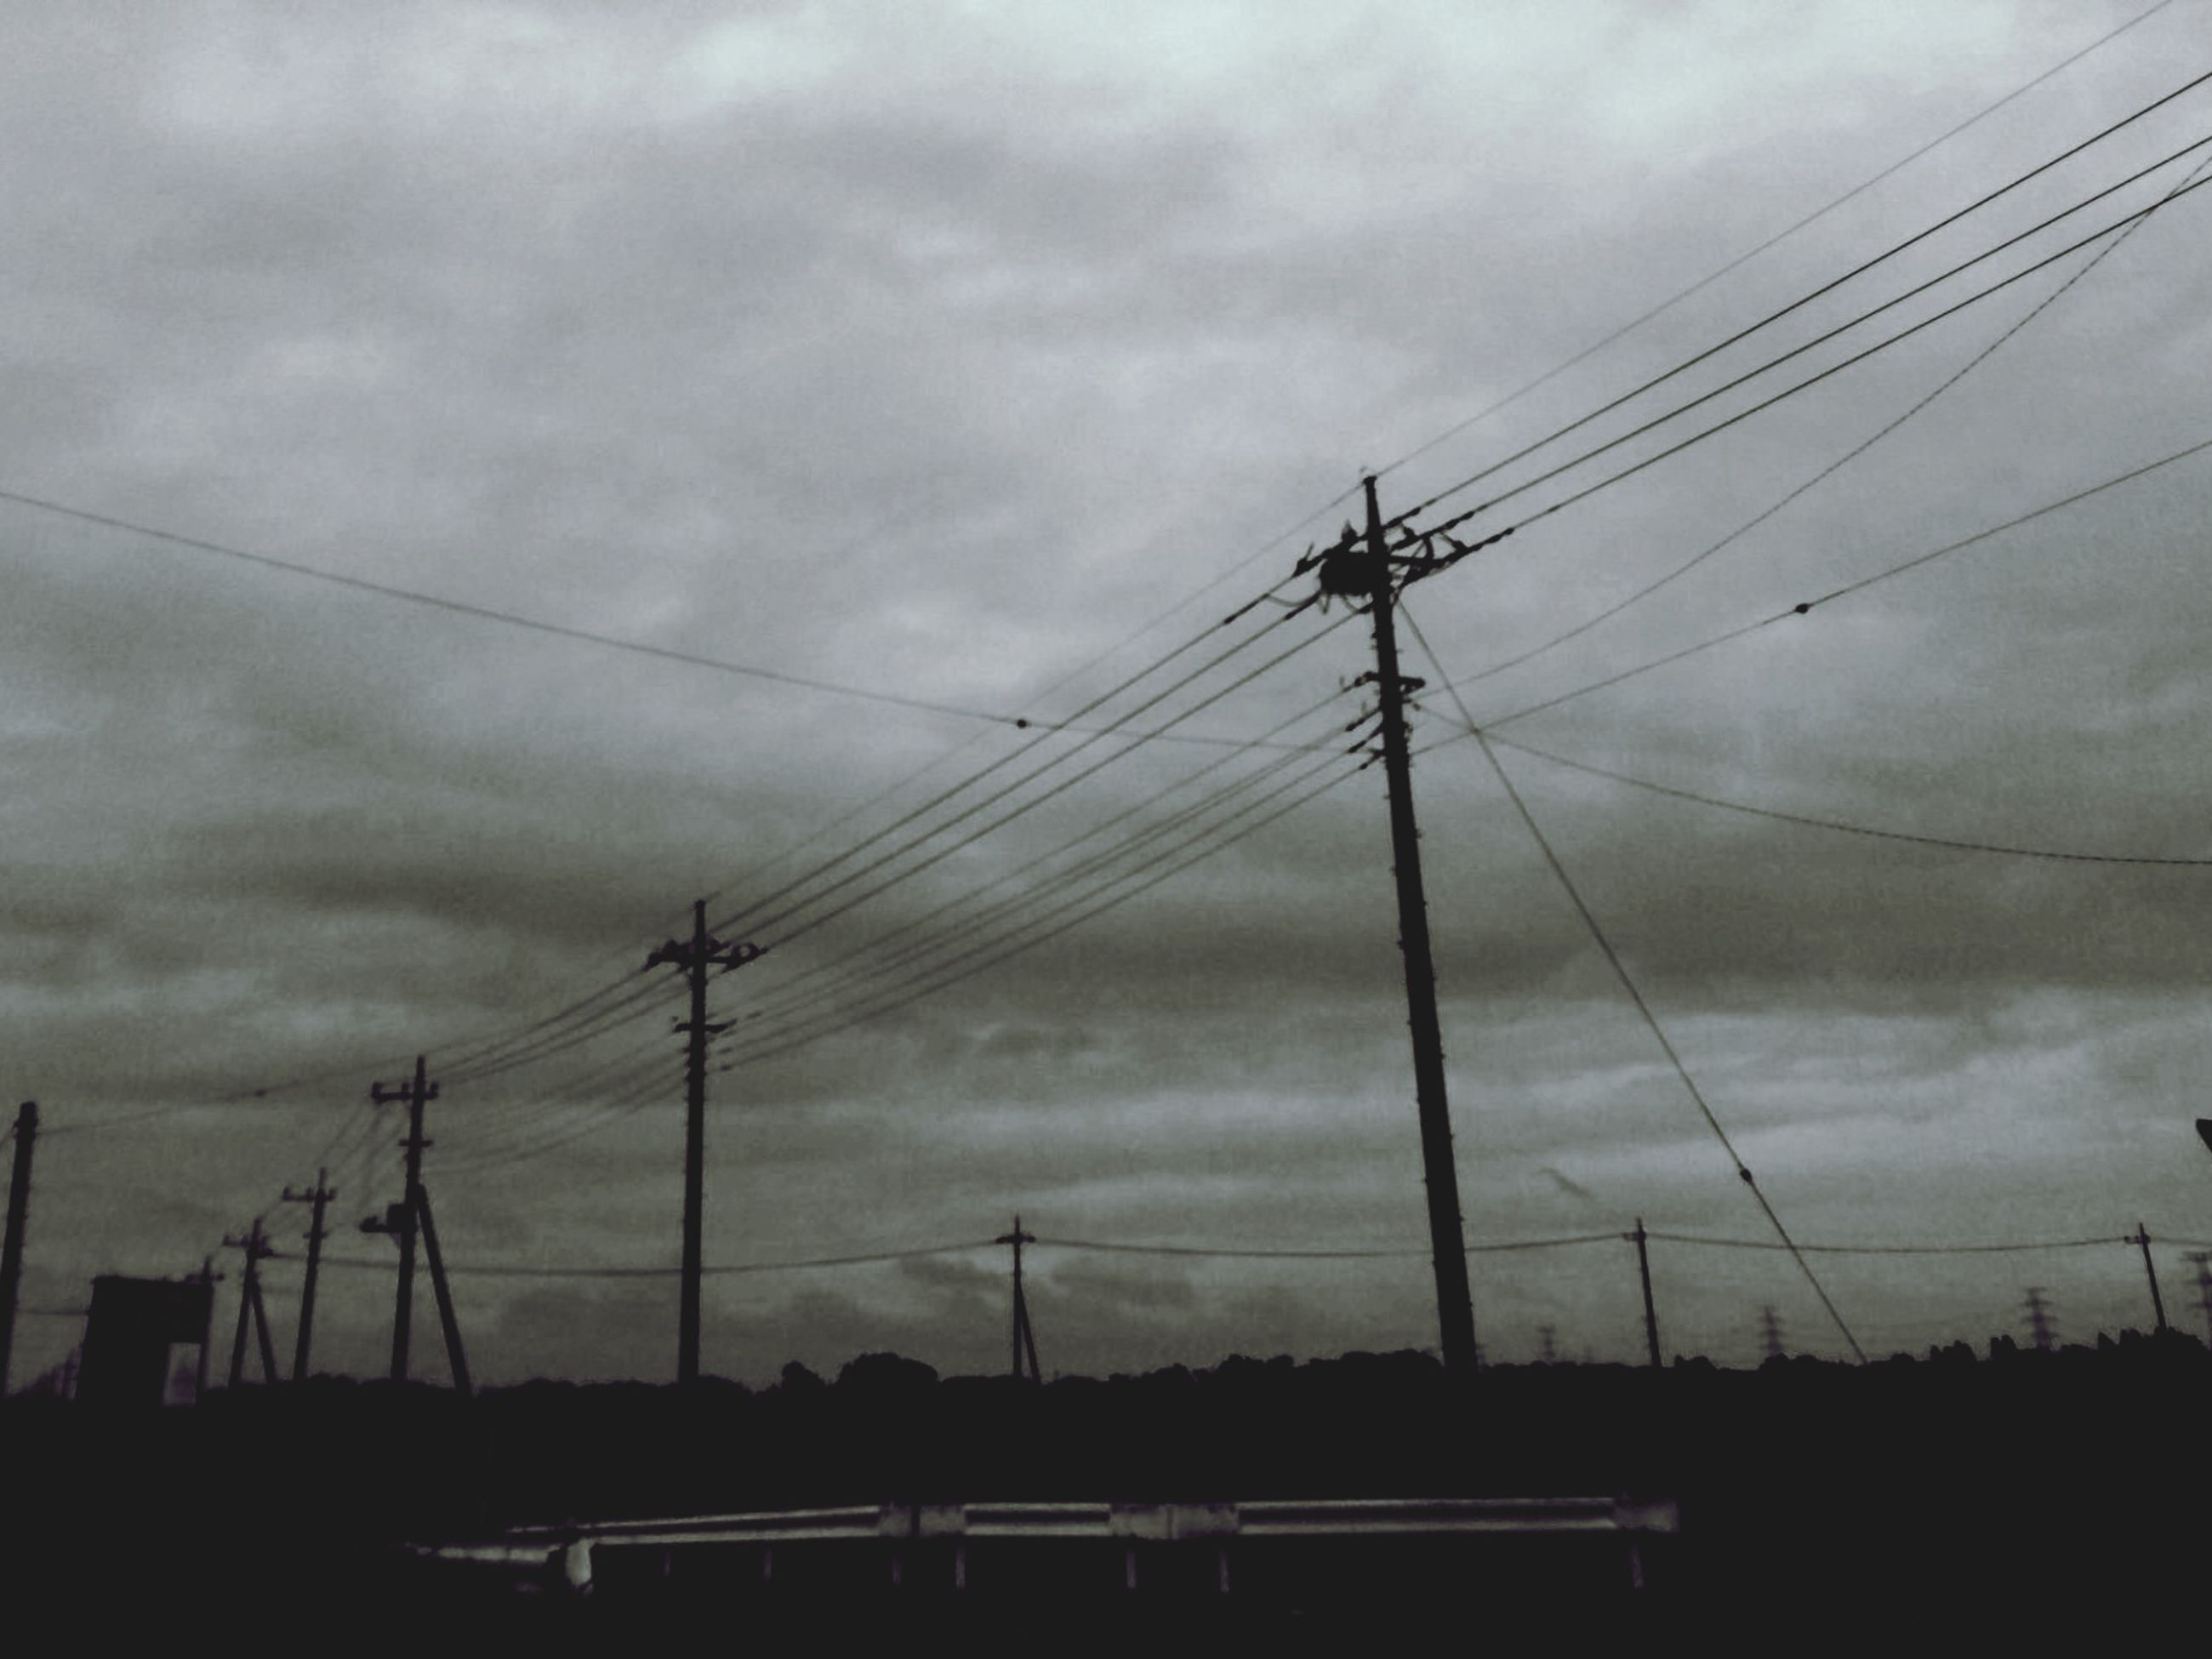 power line, electricity pylon, sky, power supply, silhouette, electricity, cloud - sky, connection, cable, fuel and power generation, cloudy, low angle view, sunset, technology, cloud, transportation, weather, overcast, dusk, power cable